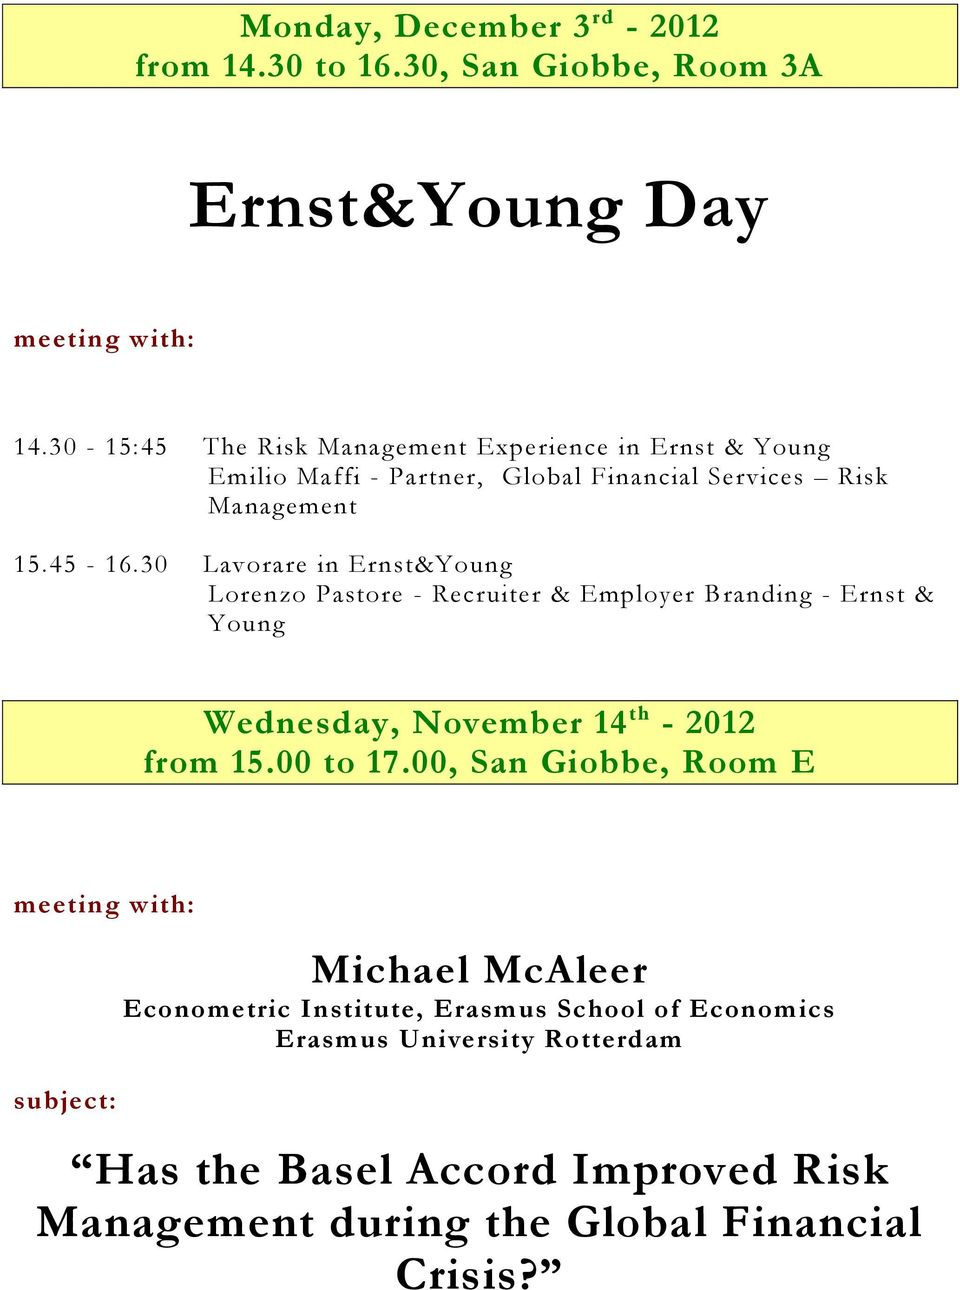 30 Lavorare in Ernst&Young Lorenzo Pastore - Recruiter & Employer Branding - Ernst & Young Wednesday, November 14 th - 2012 from 15.00 to 17.